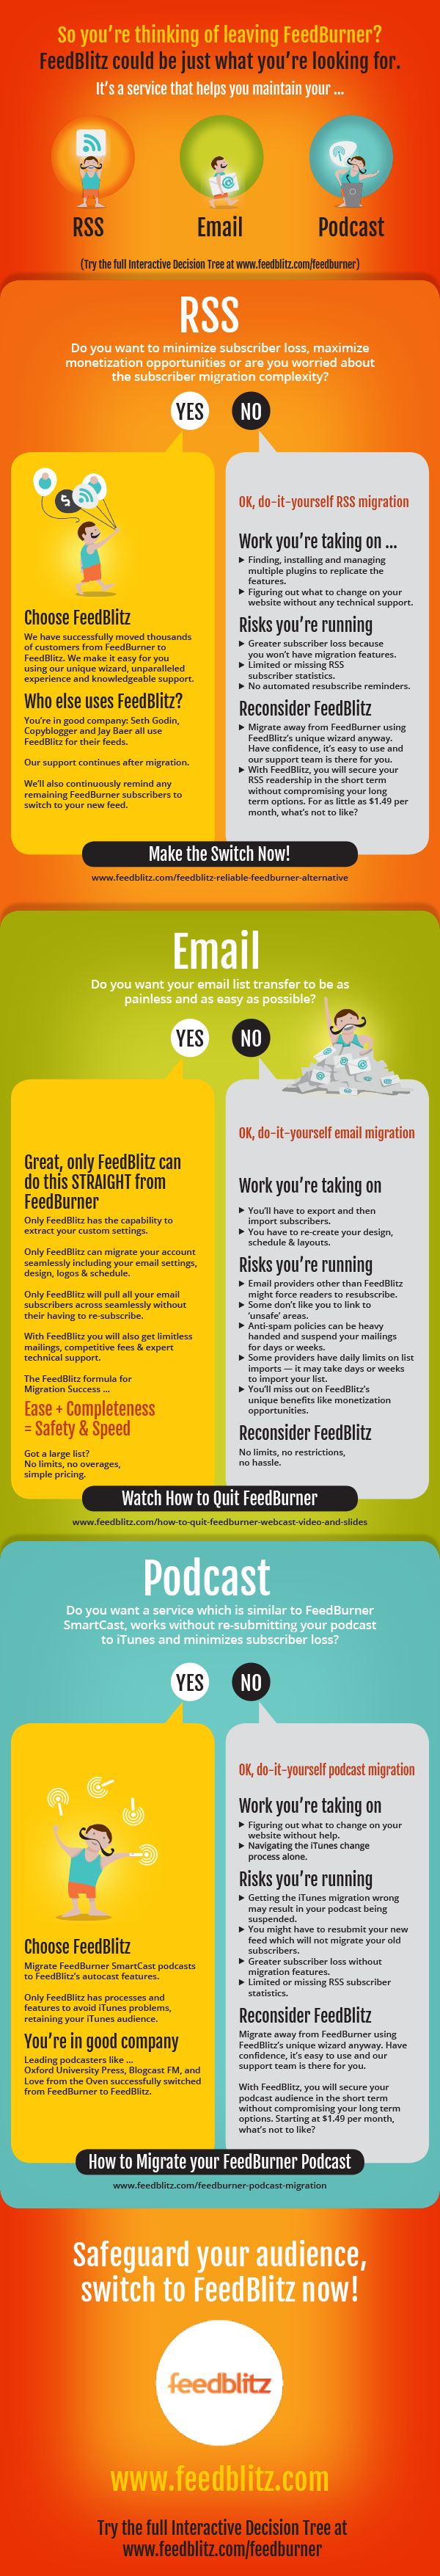 Switching from FeedBurner Decision Tree Infographic